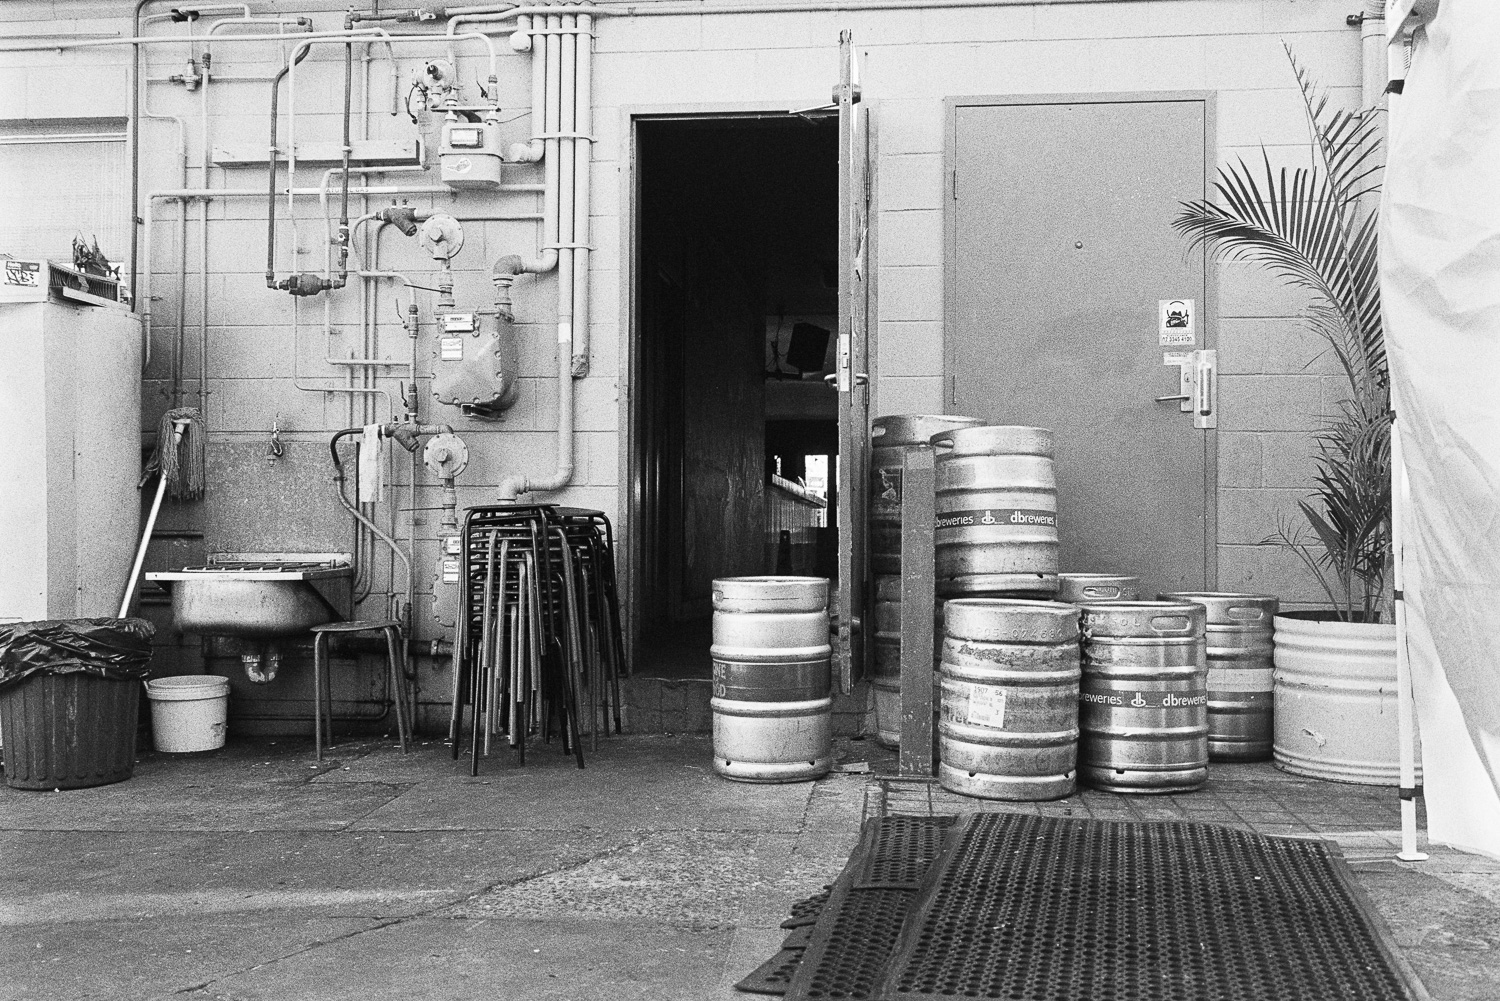 Pipes and kegs.